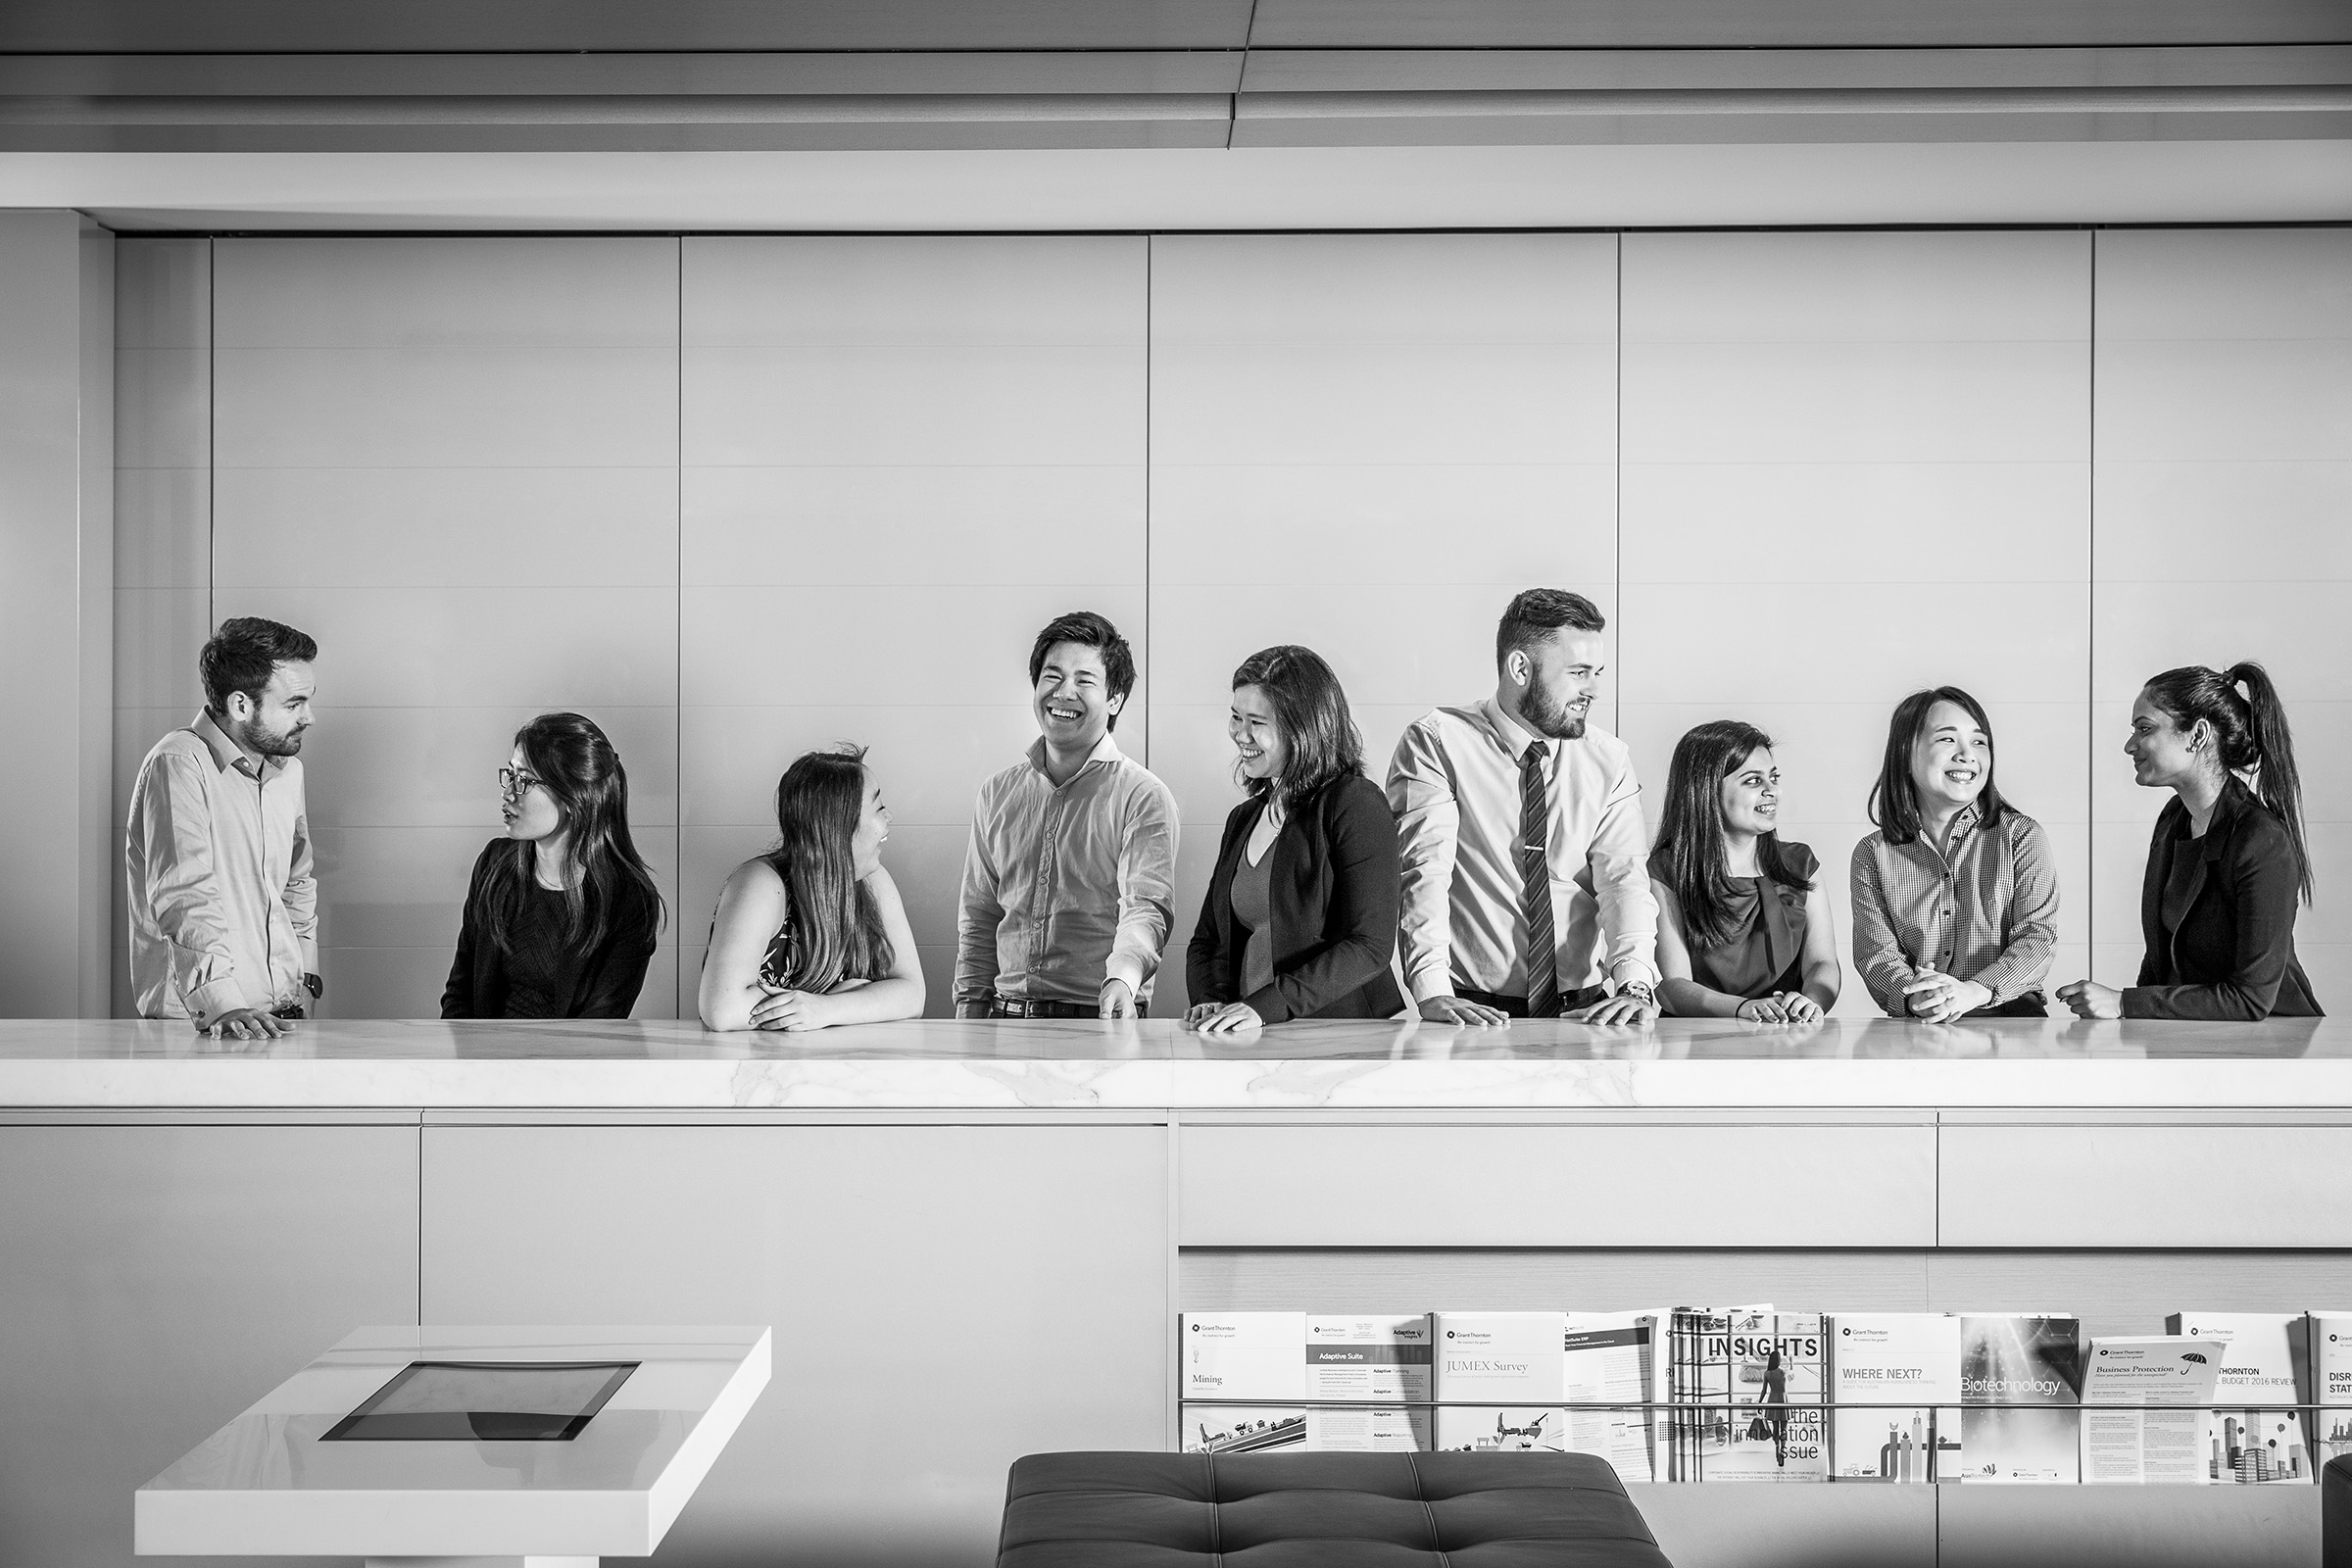 Corporate environmental casual group photography Grant Thornton graduates along a bench office background